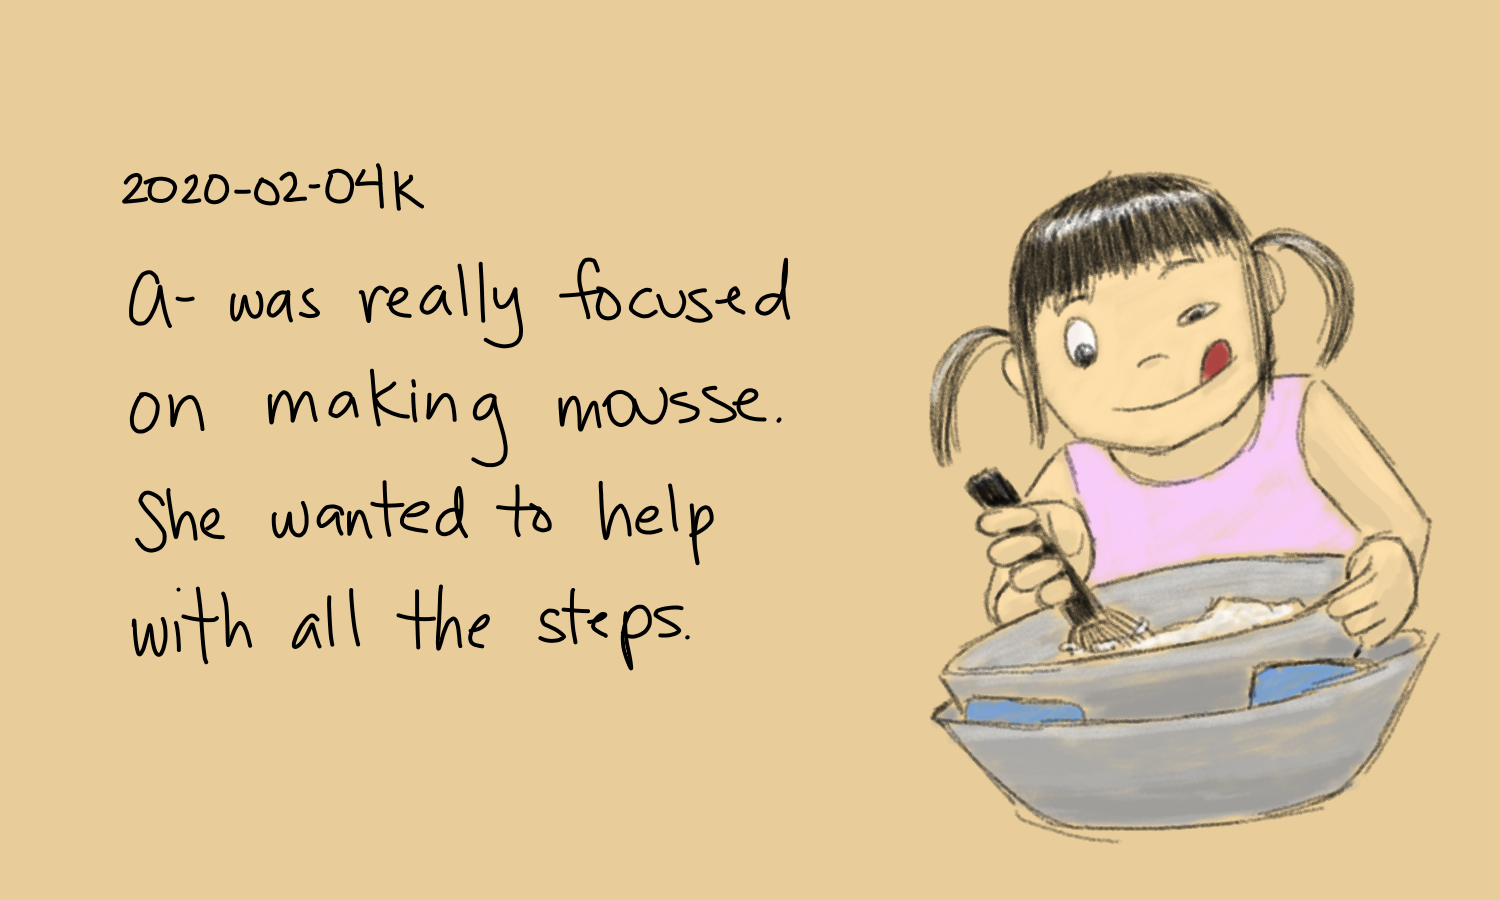 2020-02-04k A- was really focused on making mousse #moment #sketch.png